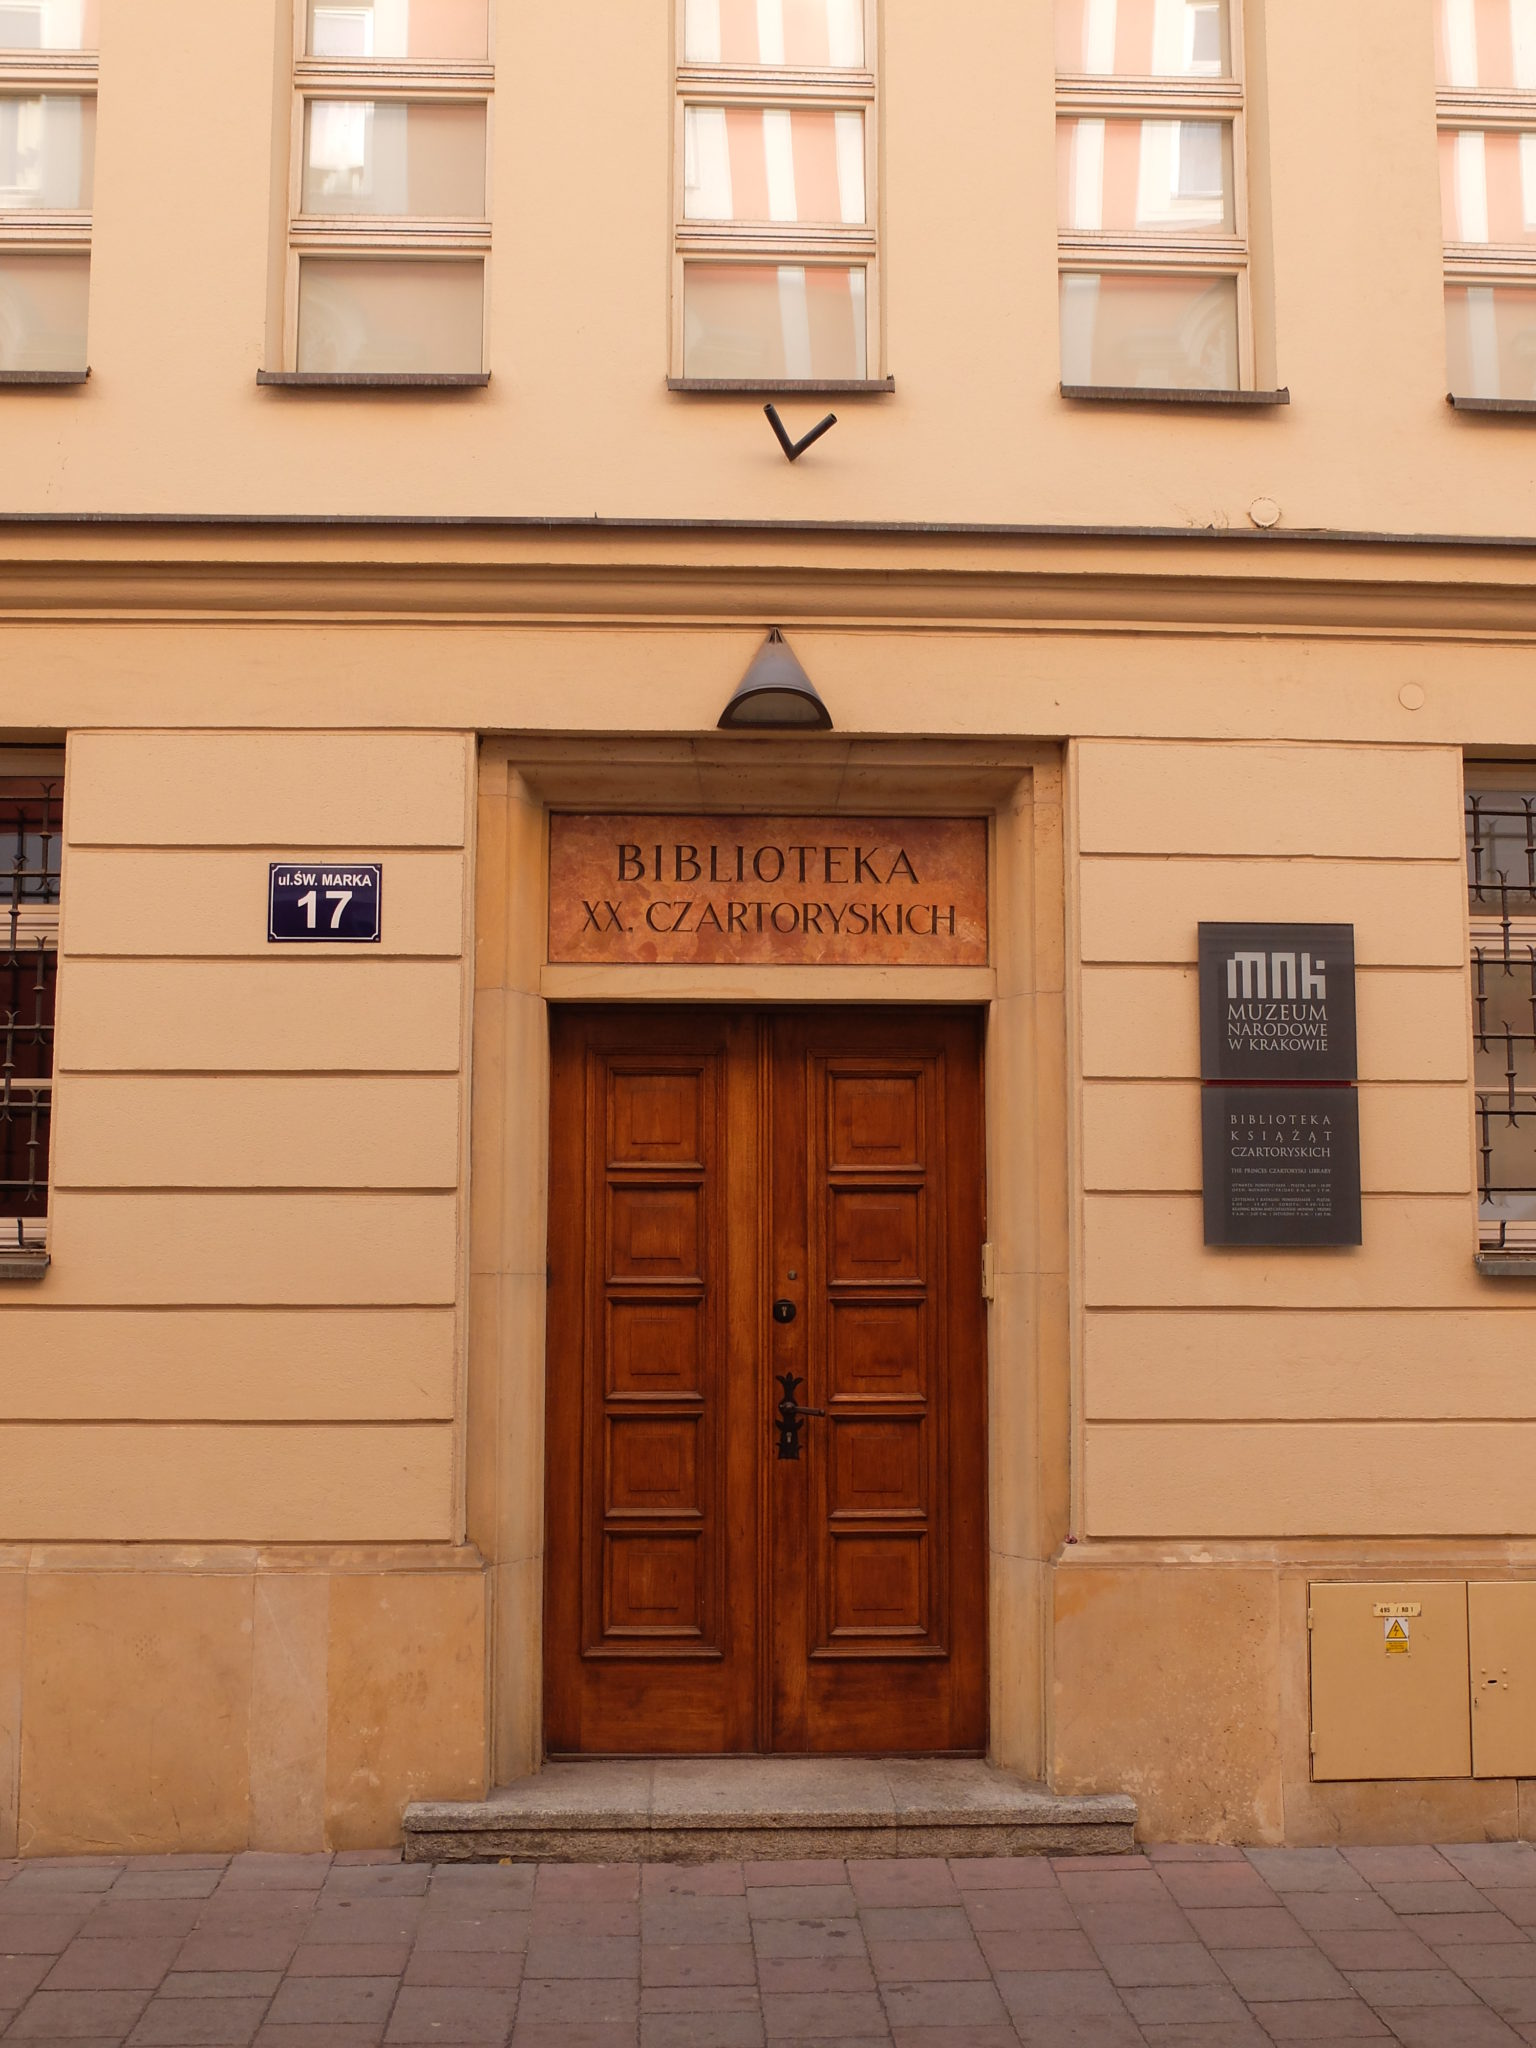 Entrance to the Princes Czartoryski Library, St. Mark Street in Krakow